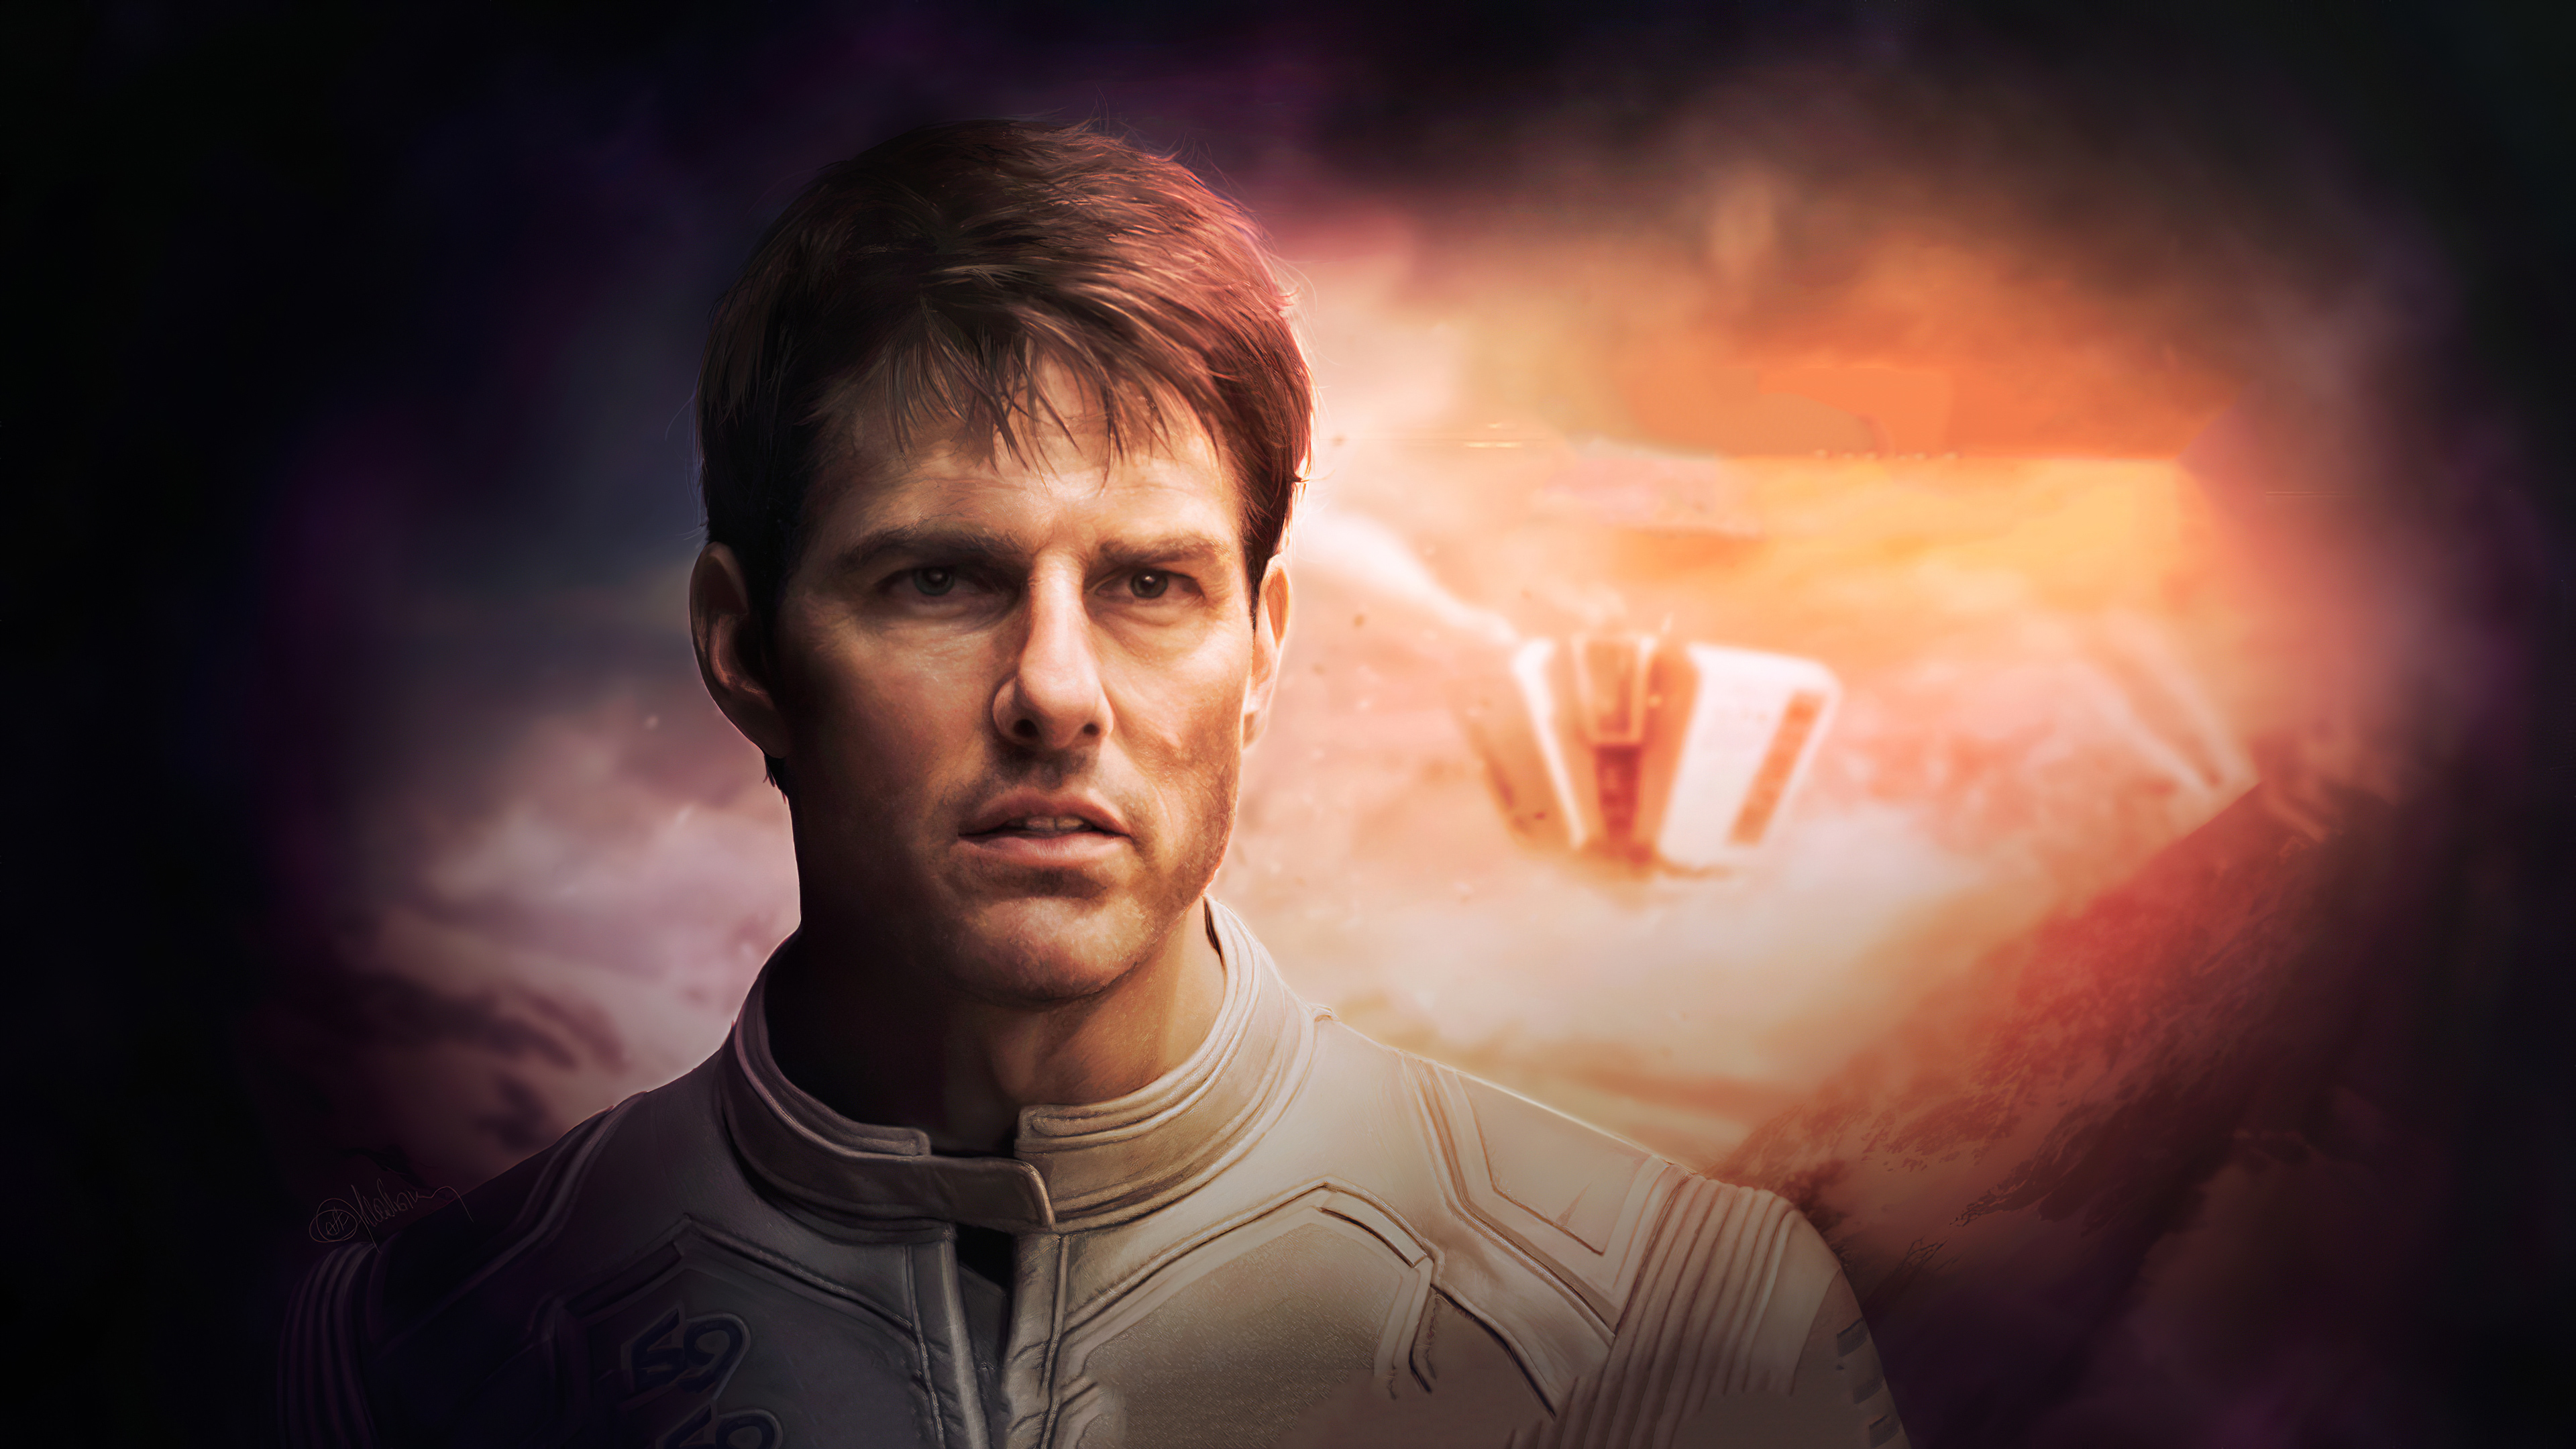 Tom Cruise Oblivion Hd Movies 4k Wallpapers Images Backgrounds Photos And Pictures